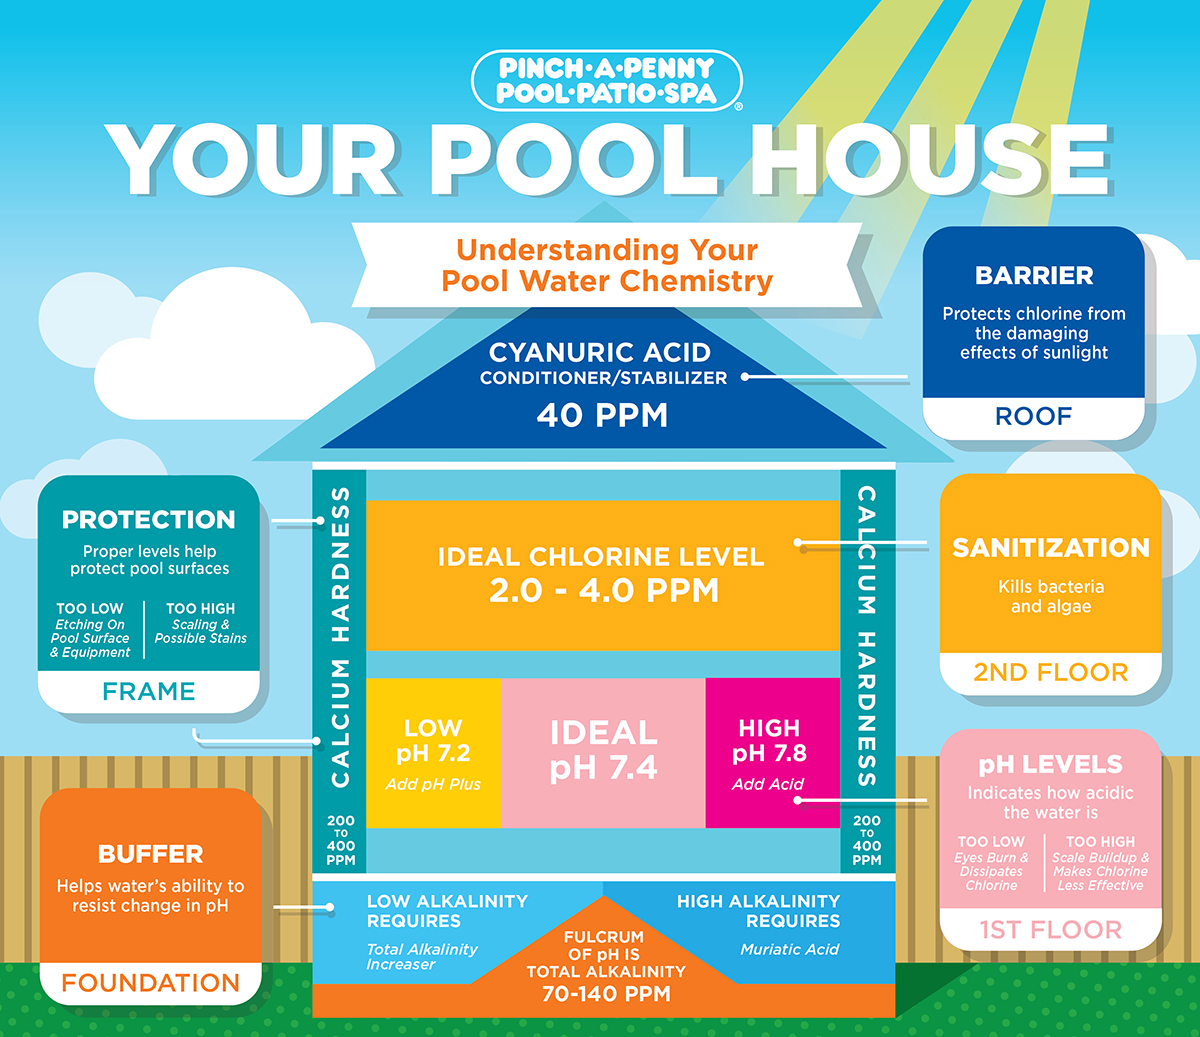 Water Balance and the Pool House